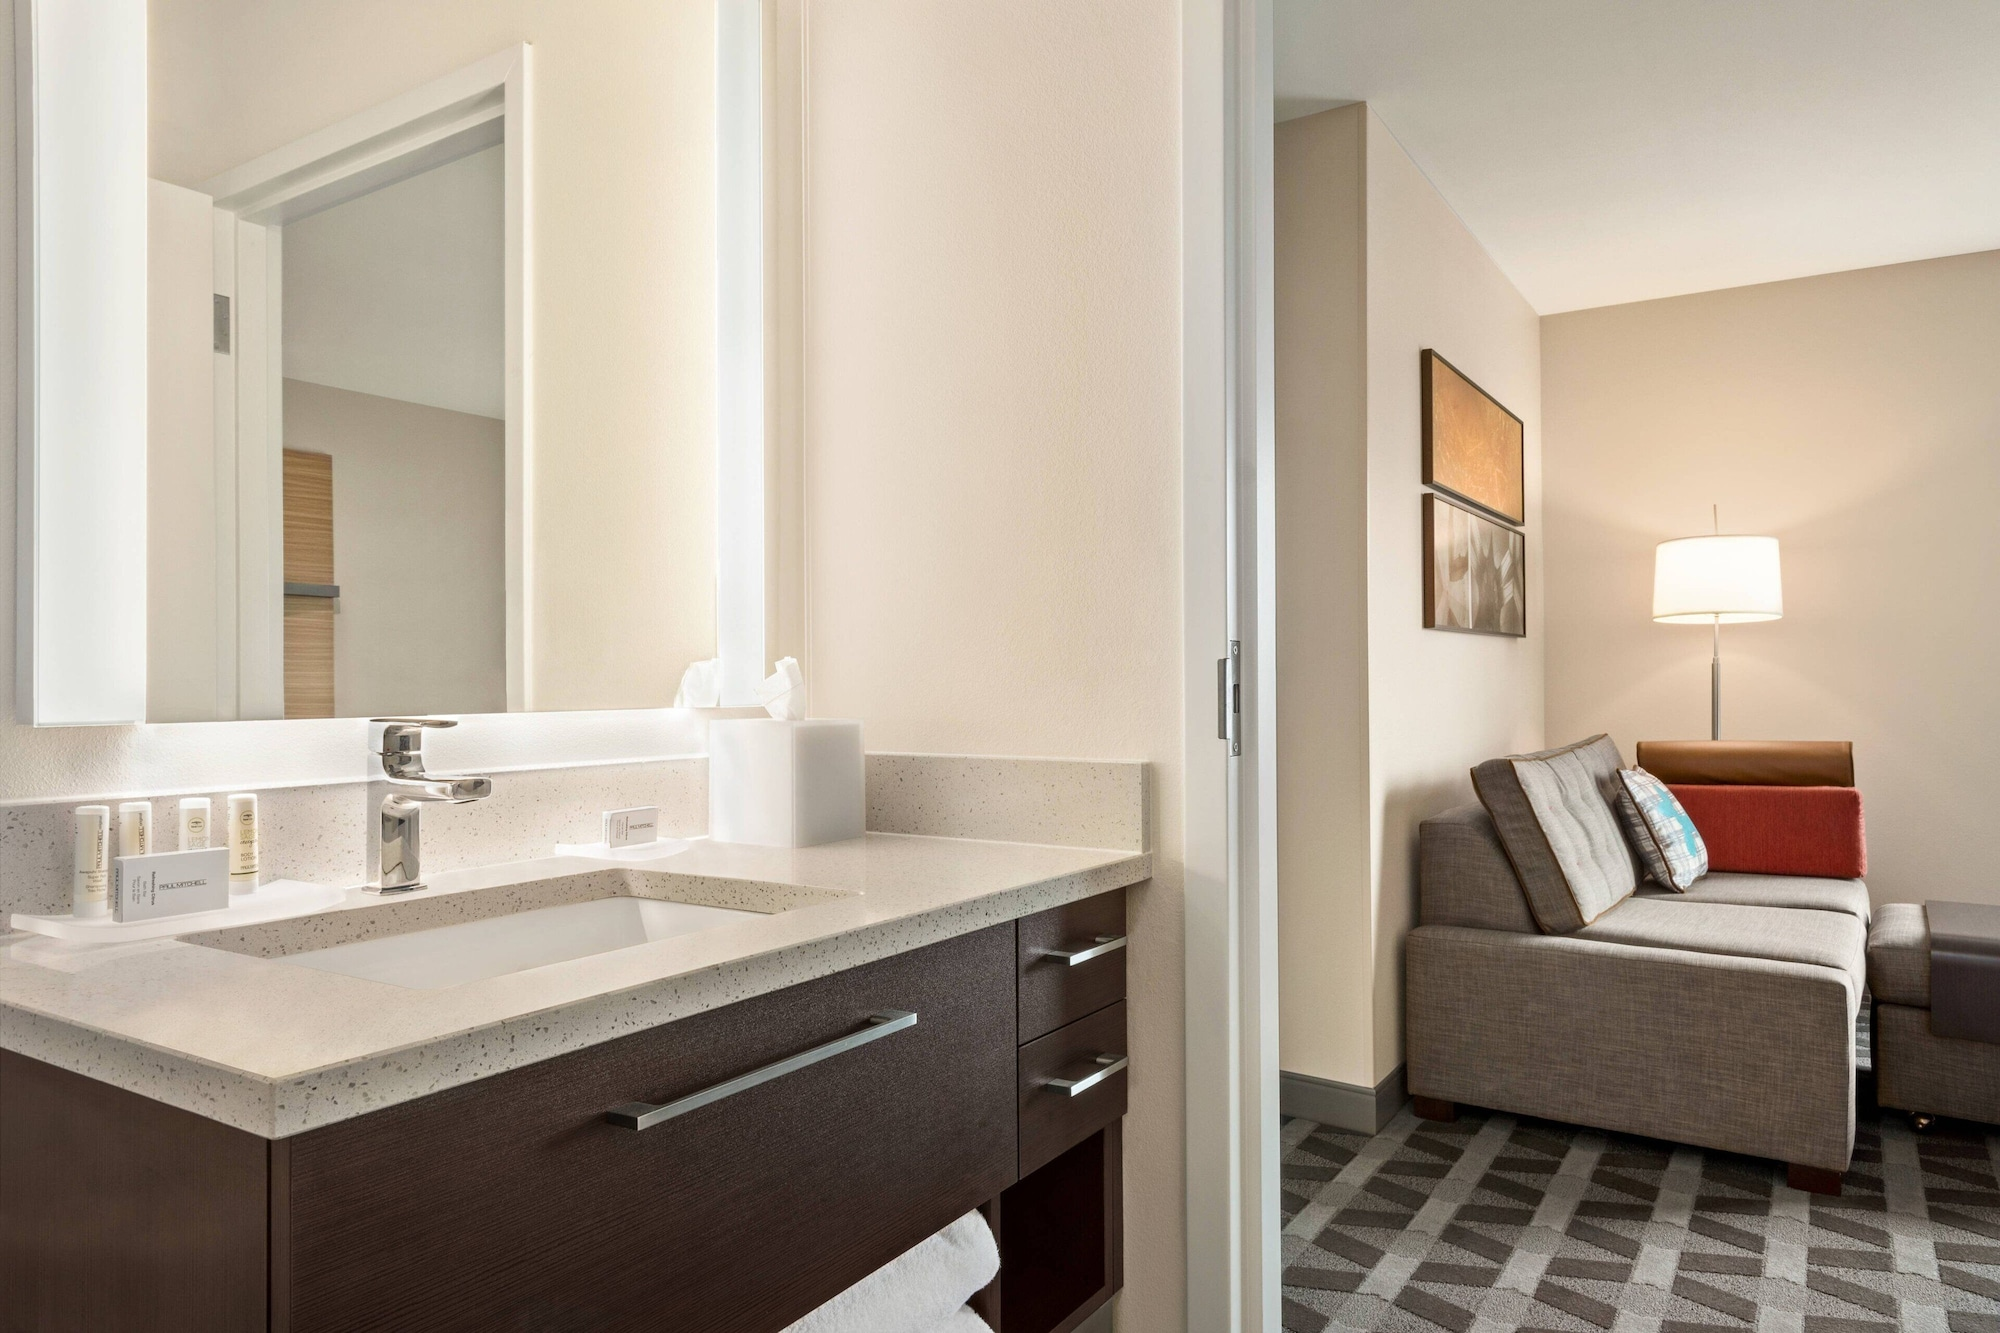 TownePlace Suites by Marriott Janesville, Rock